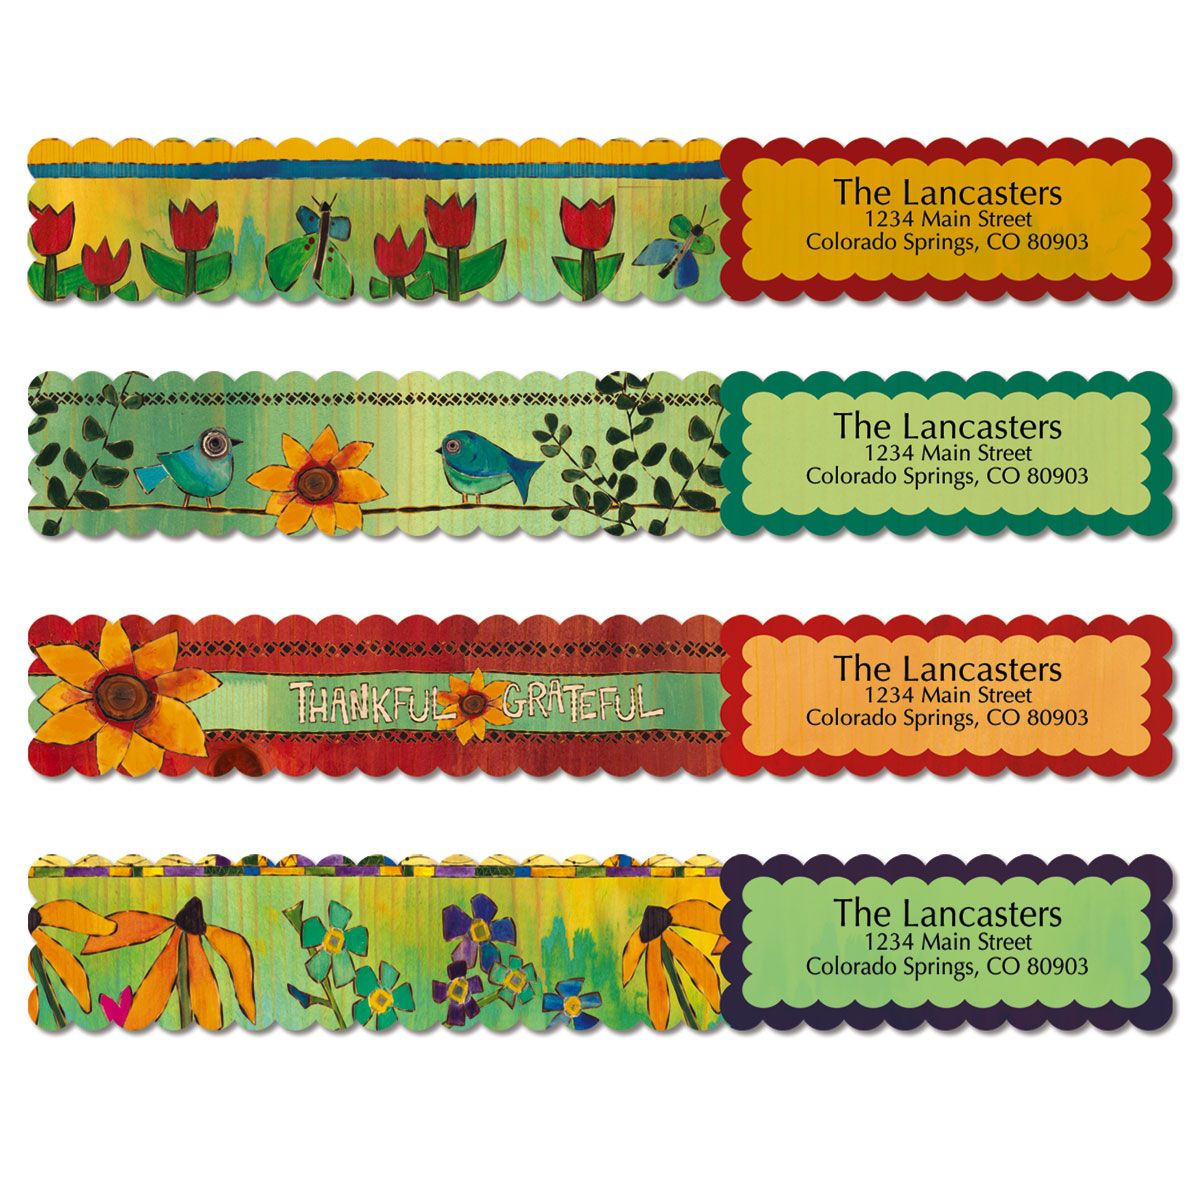 Lovely Garden Wrap Around Address Labels (4 Designs)